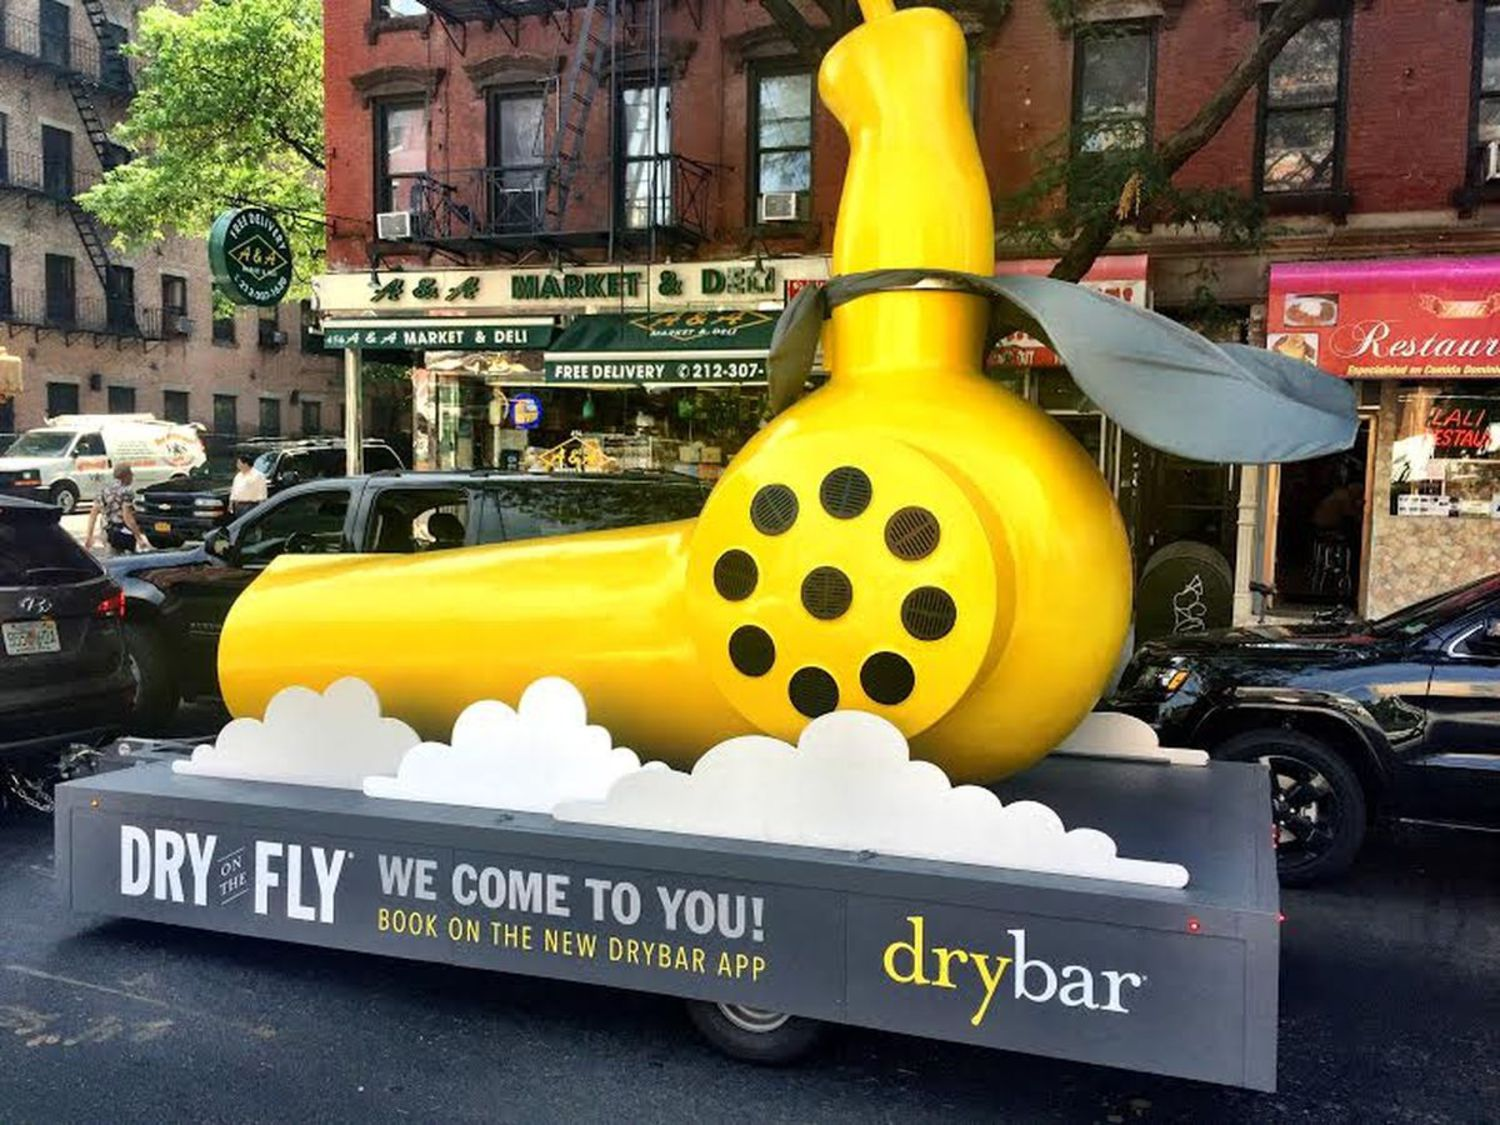 Watch Out for Drybar's Giant Yellow Blowdryers on the Street This Week